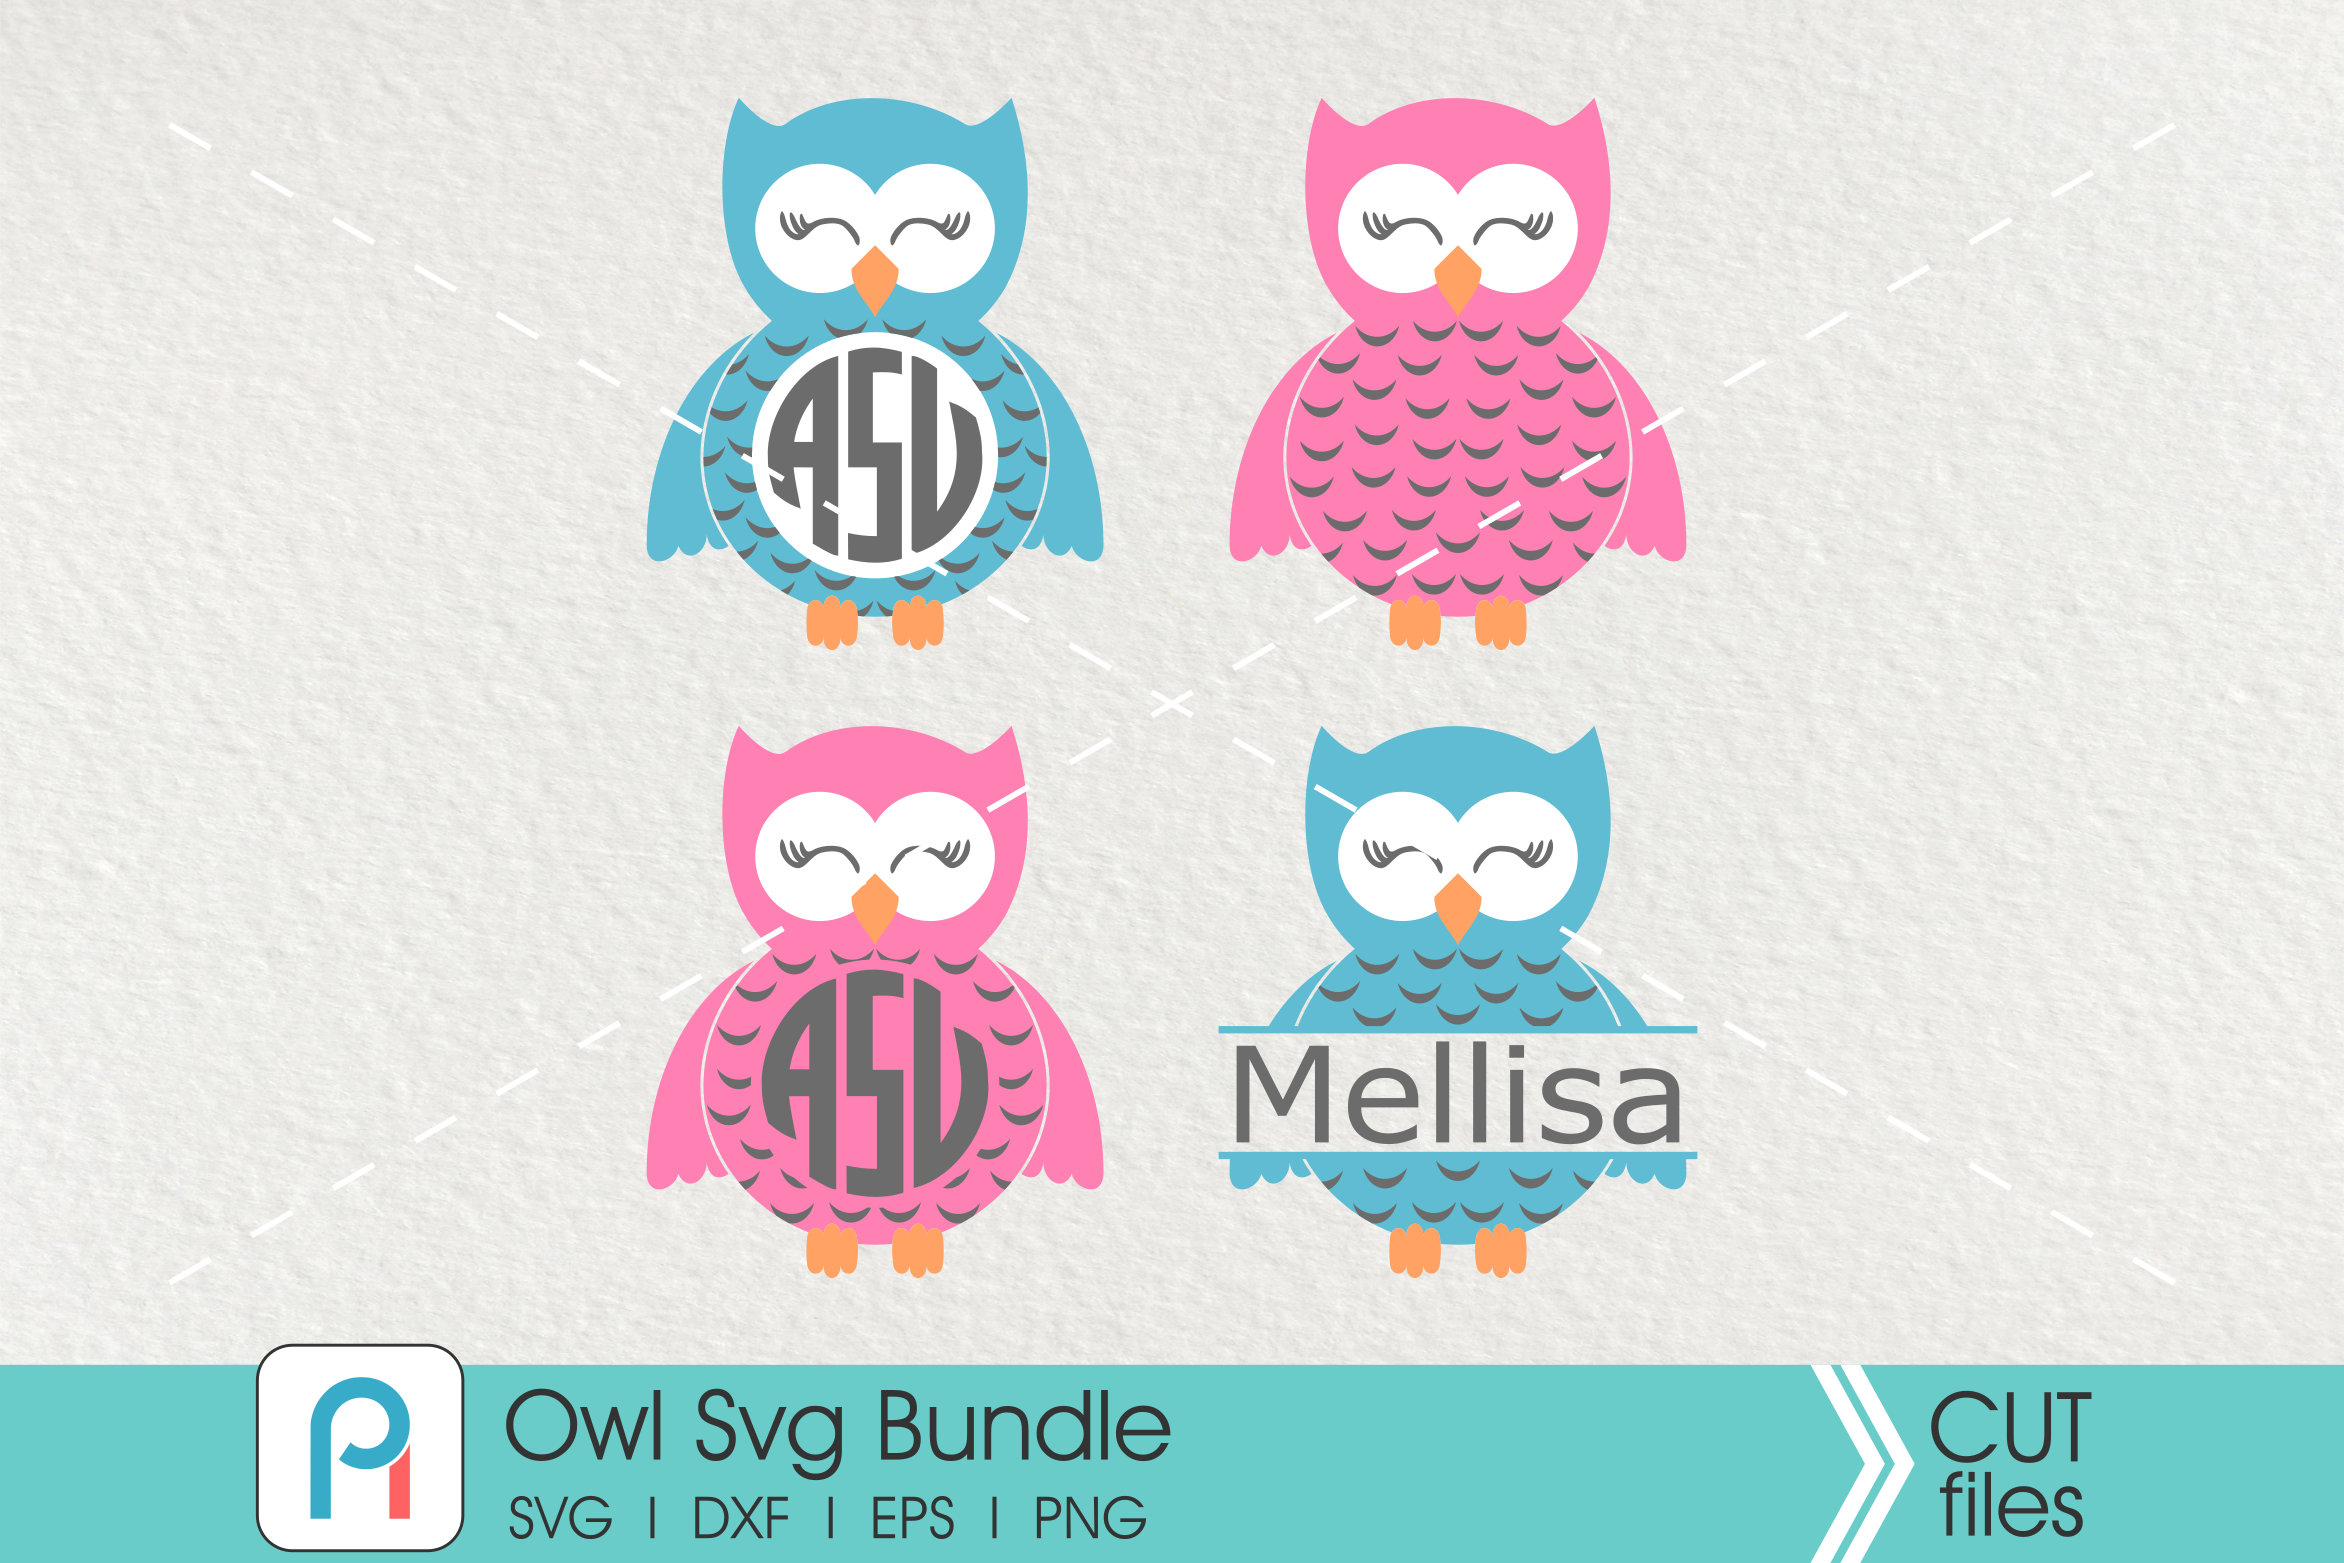 Owl Svg Bundle - owl vector cut files example image 1